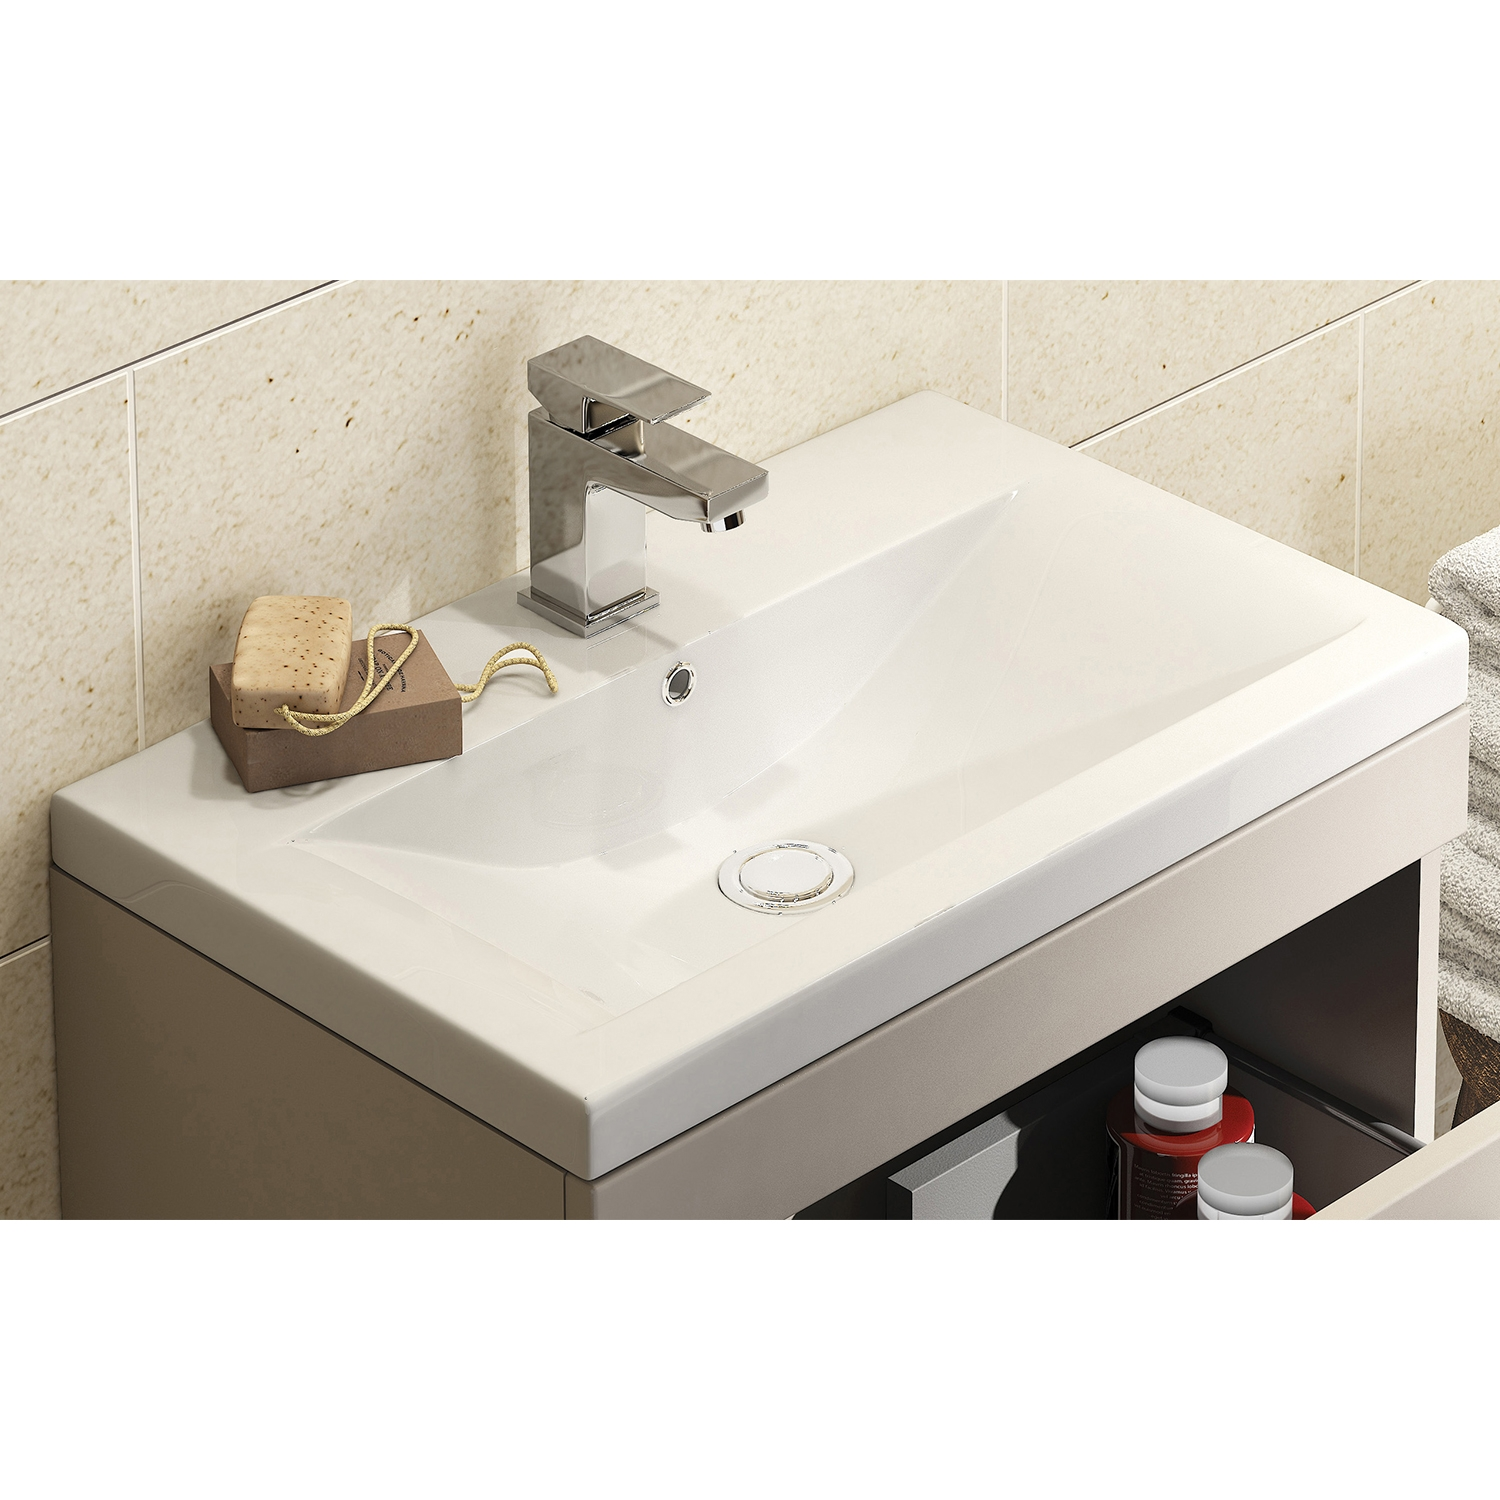 Premier Shipton Wall Hung Vanity Unit with Mid-Edged Basin 500mm Wide - Stone Grey 1 Tap Hole